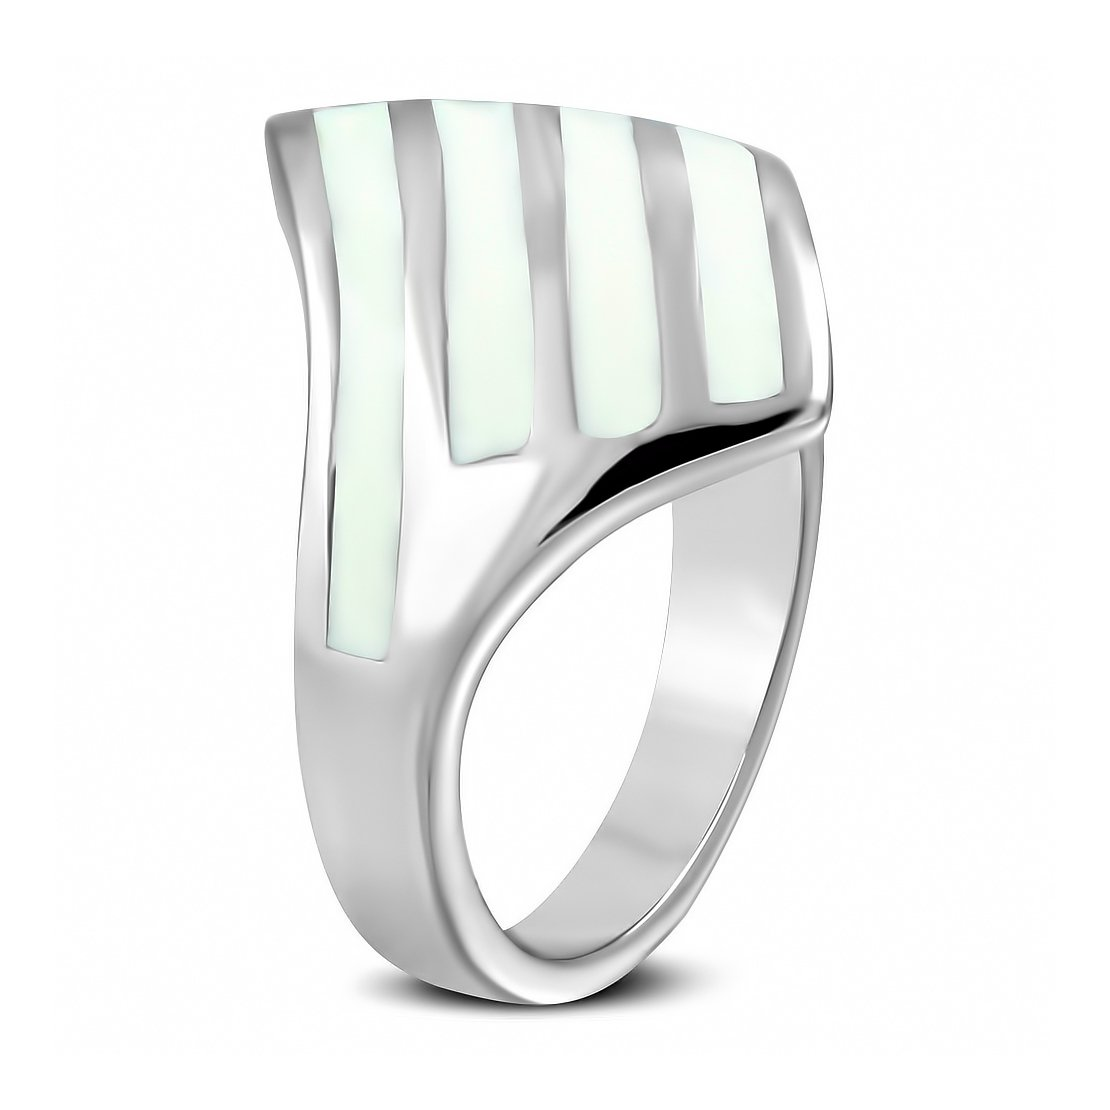 Stainless Steel 2 Color White Enameled Zebra Striped Geometric Triangle Cocktail Ring